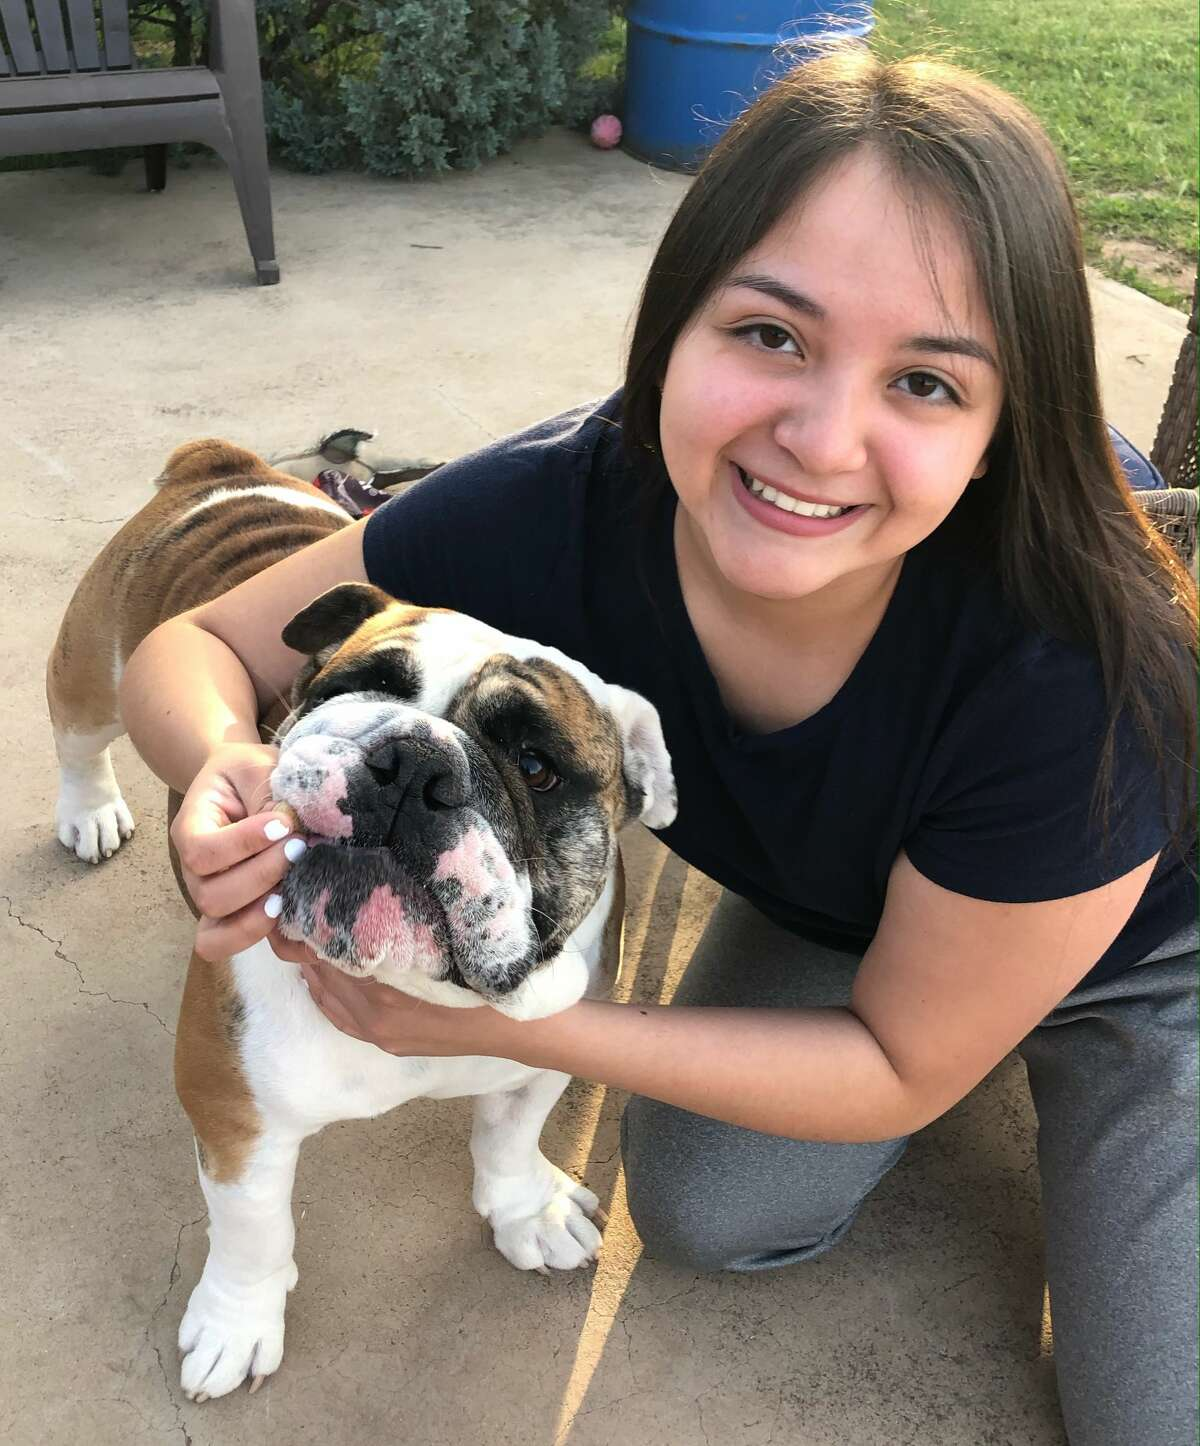 Jamie Gomez, salutatorian of Early College High School at Midland College class of 2020, is majoring in neuroscience at University of Texas. She will be leaving her dog, Jabba.